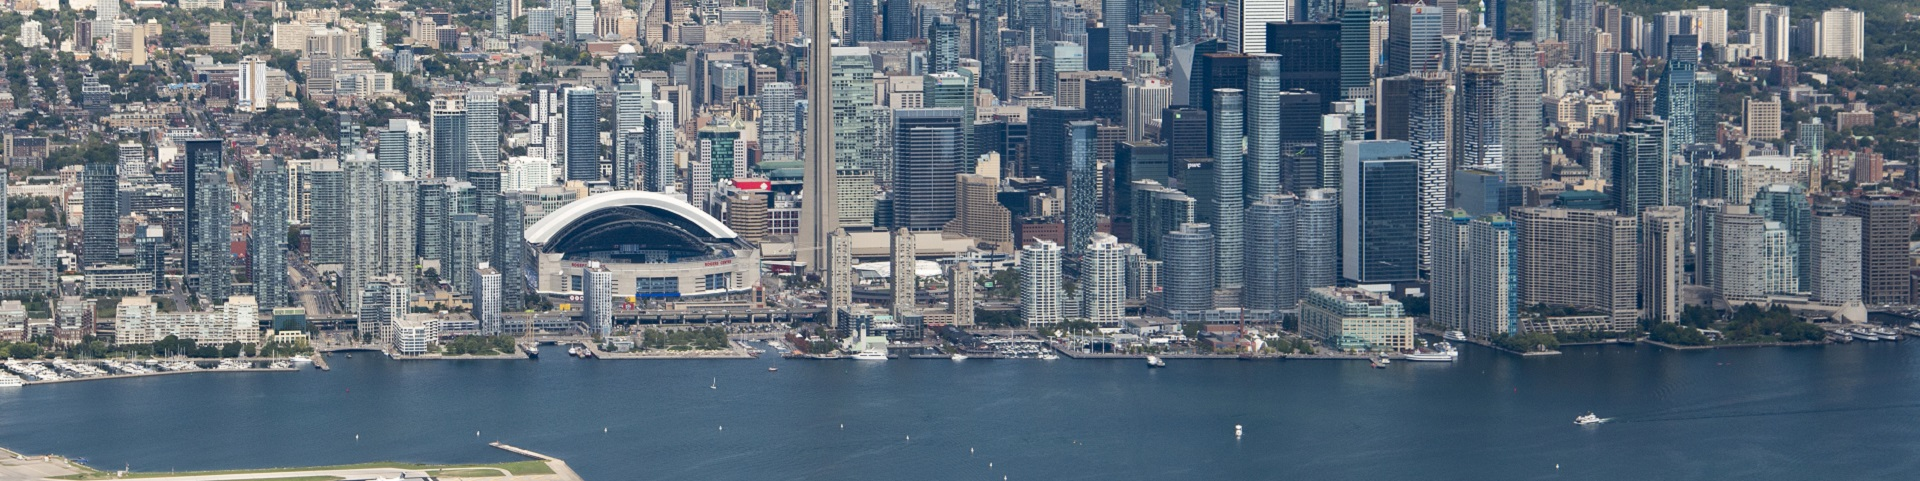 aerial view of Toronto waterfront